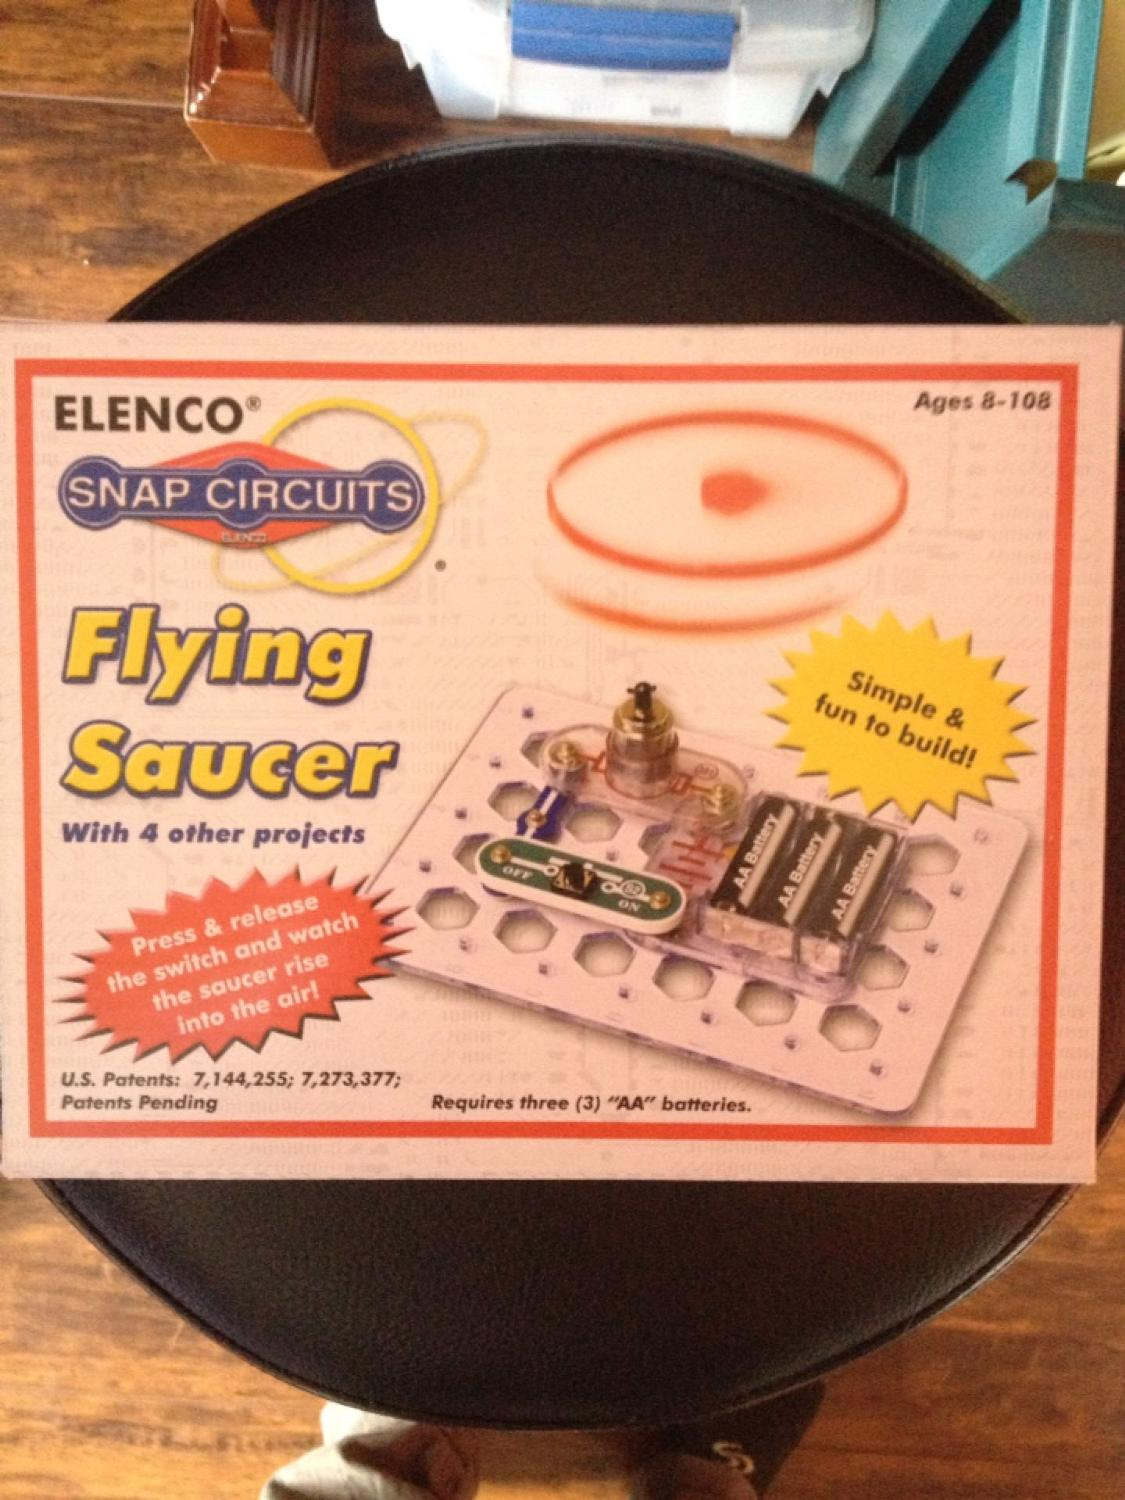 Find More Snap Circuits Flyer Saucer Project Kit For Sale At Up To Elenco Flying Easy Build Provides Hours Of Fun 90 Off Airdrie Ab